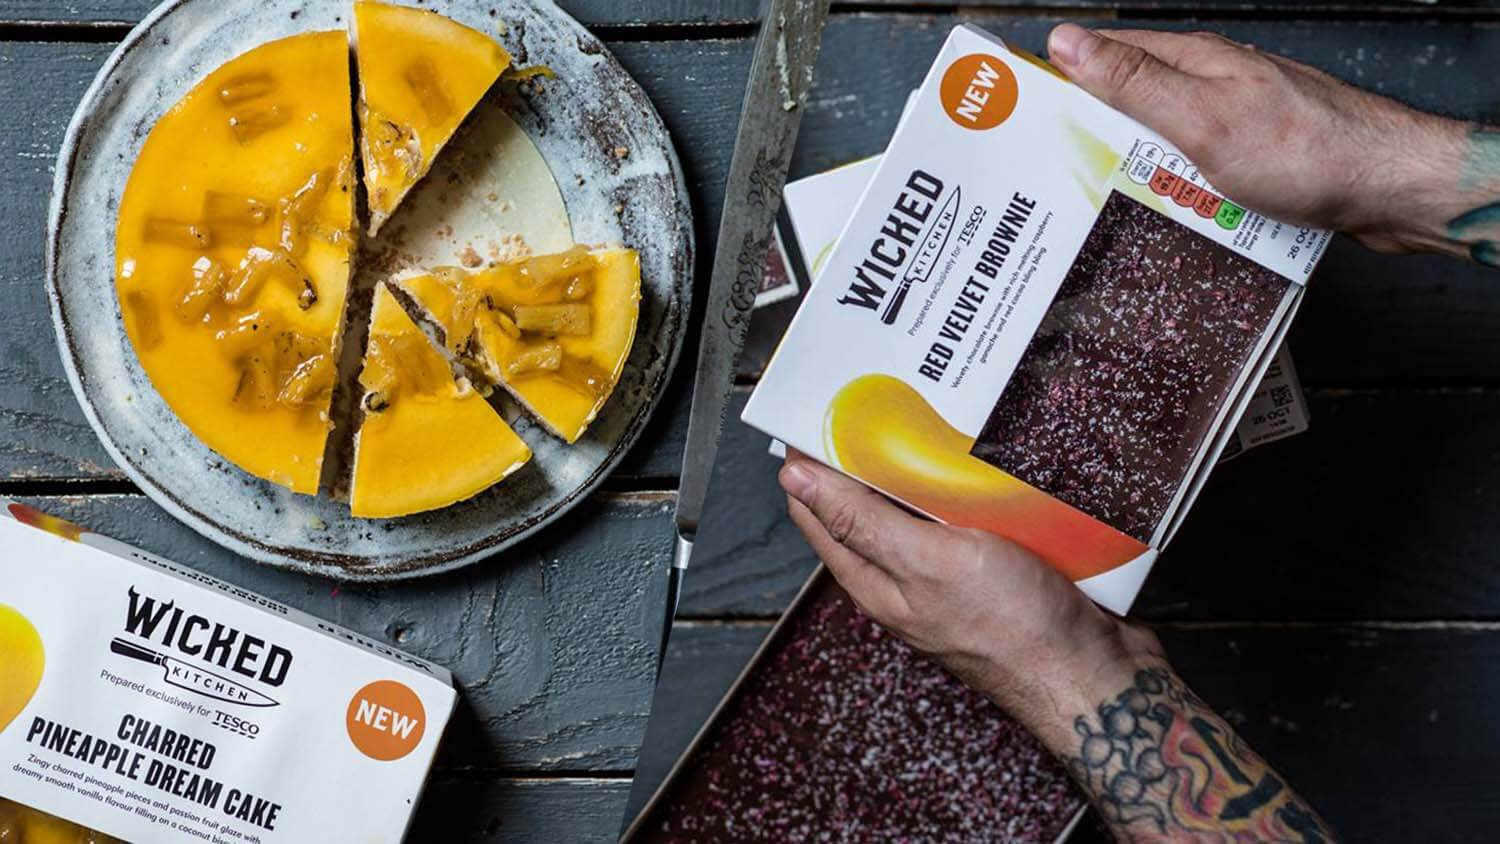 Tesco More Than Doubles Vegan Ready Meal Range With 26 New Wicked Kitchen Products